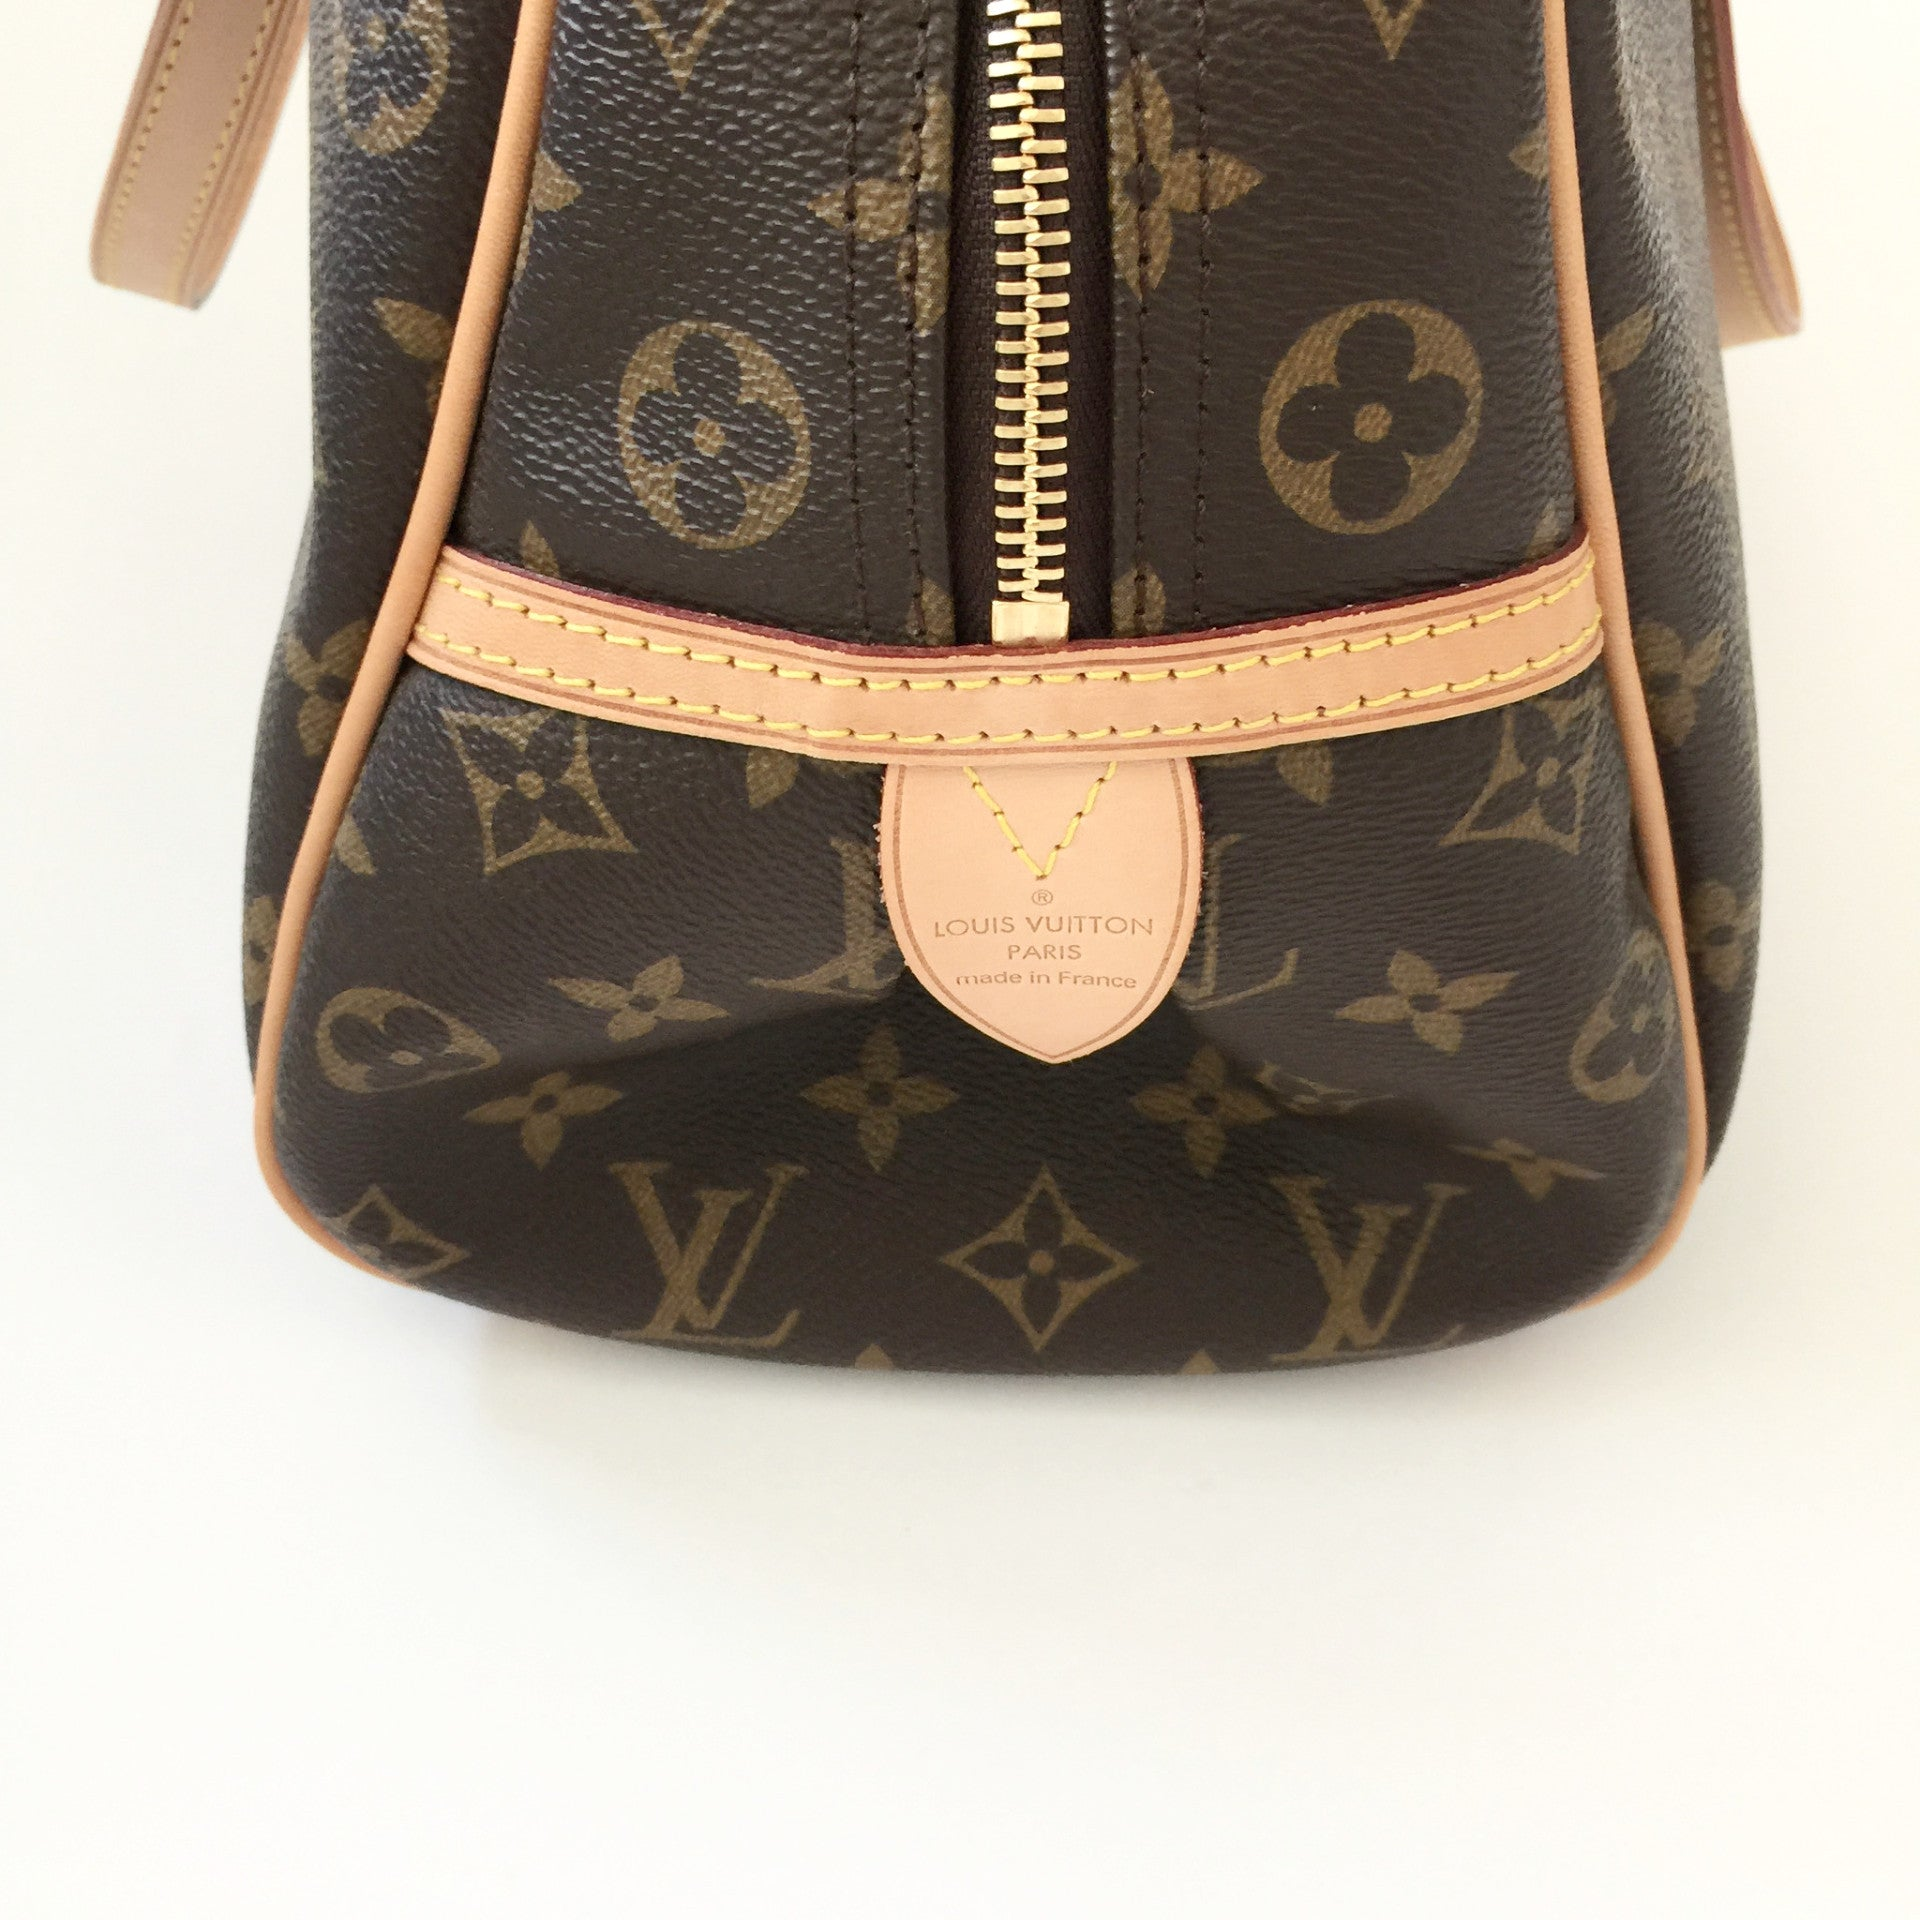 Authentic LOUIS VUITTON Montorgueil GM Handbag